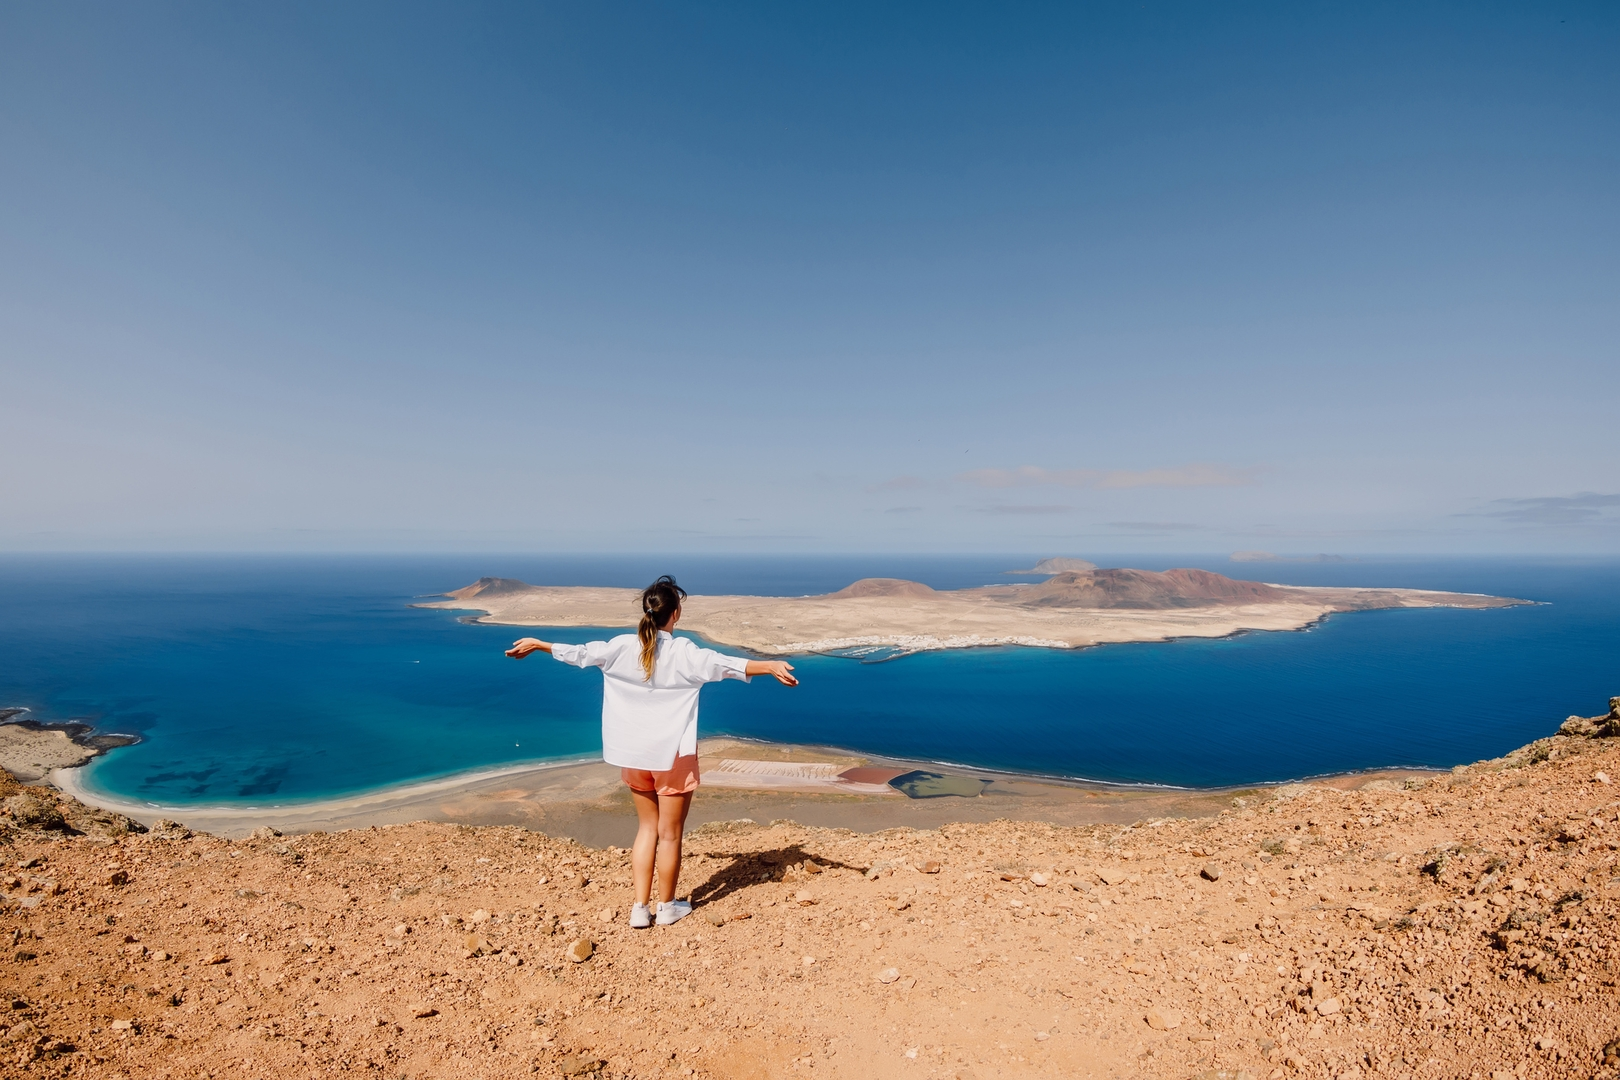 Happy traveller woman and scenic viewpoint to La Graciosa from Lanzarote island